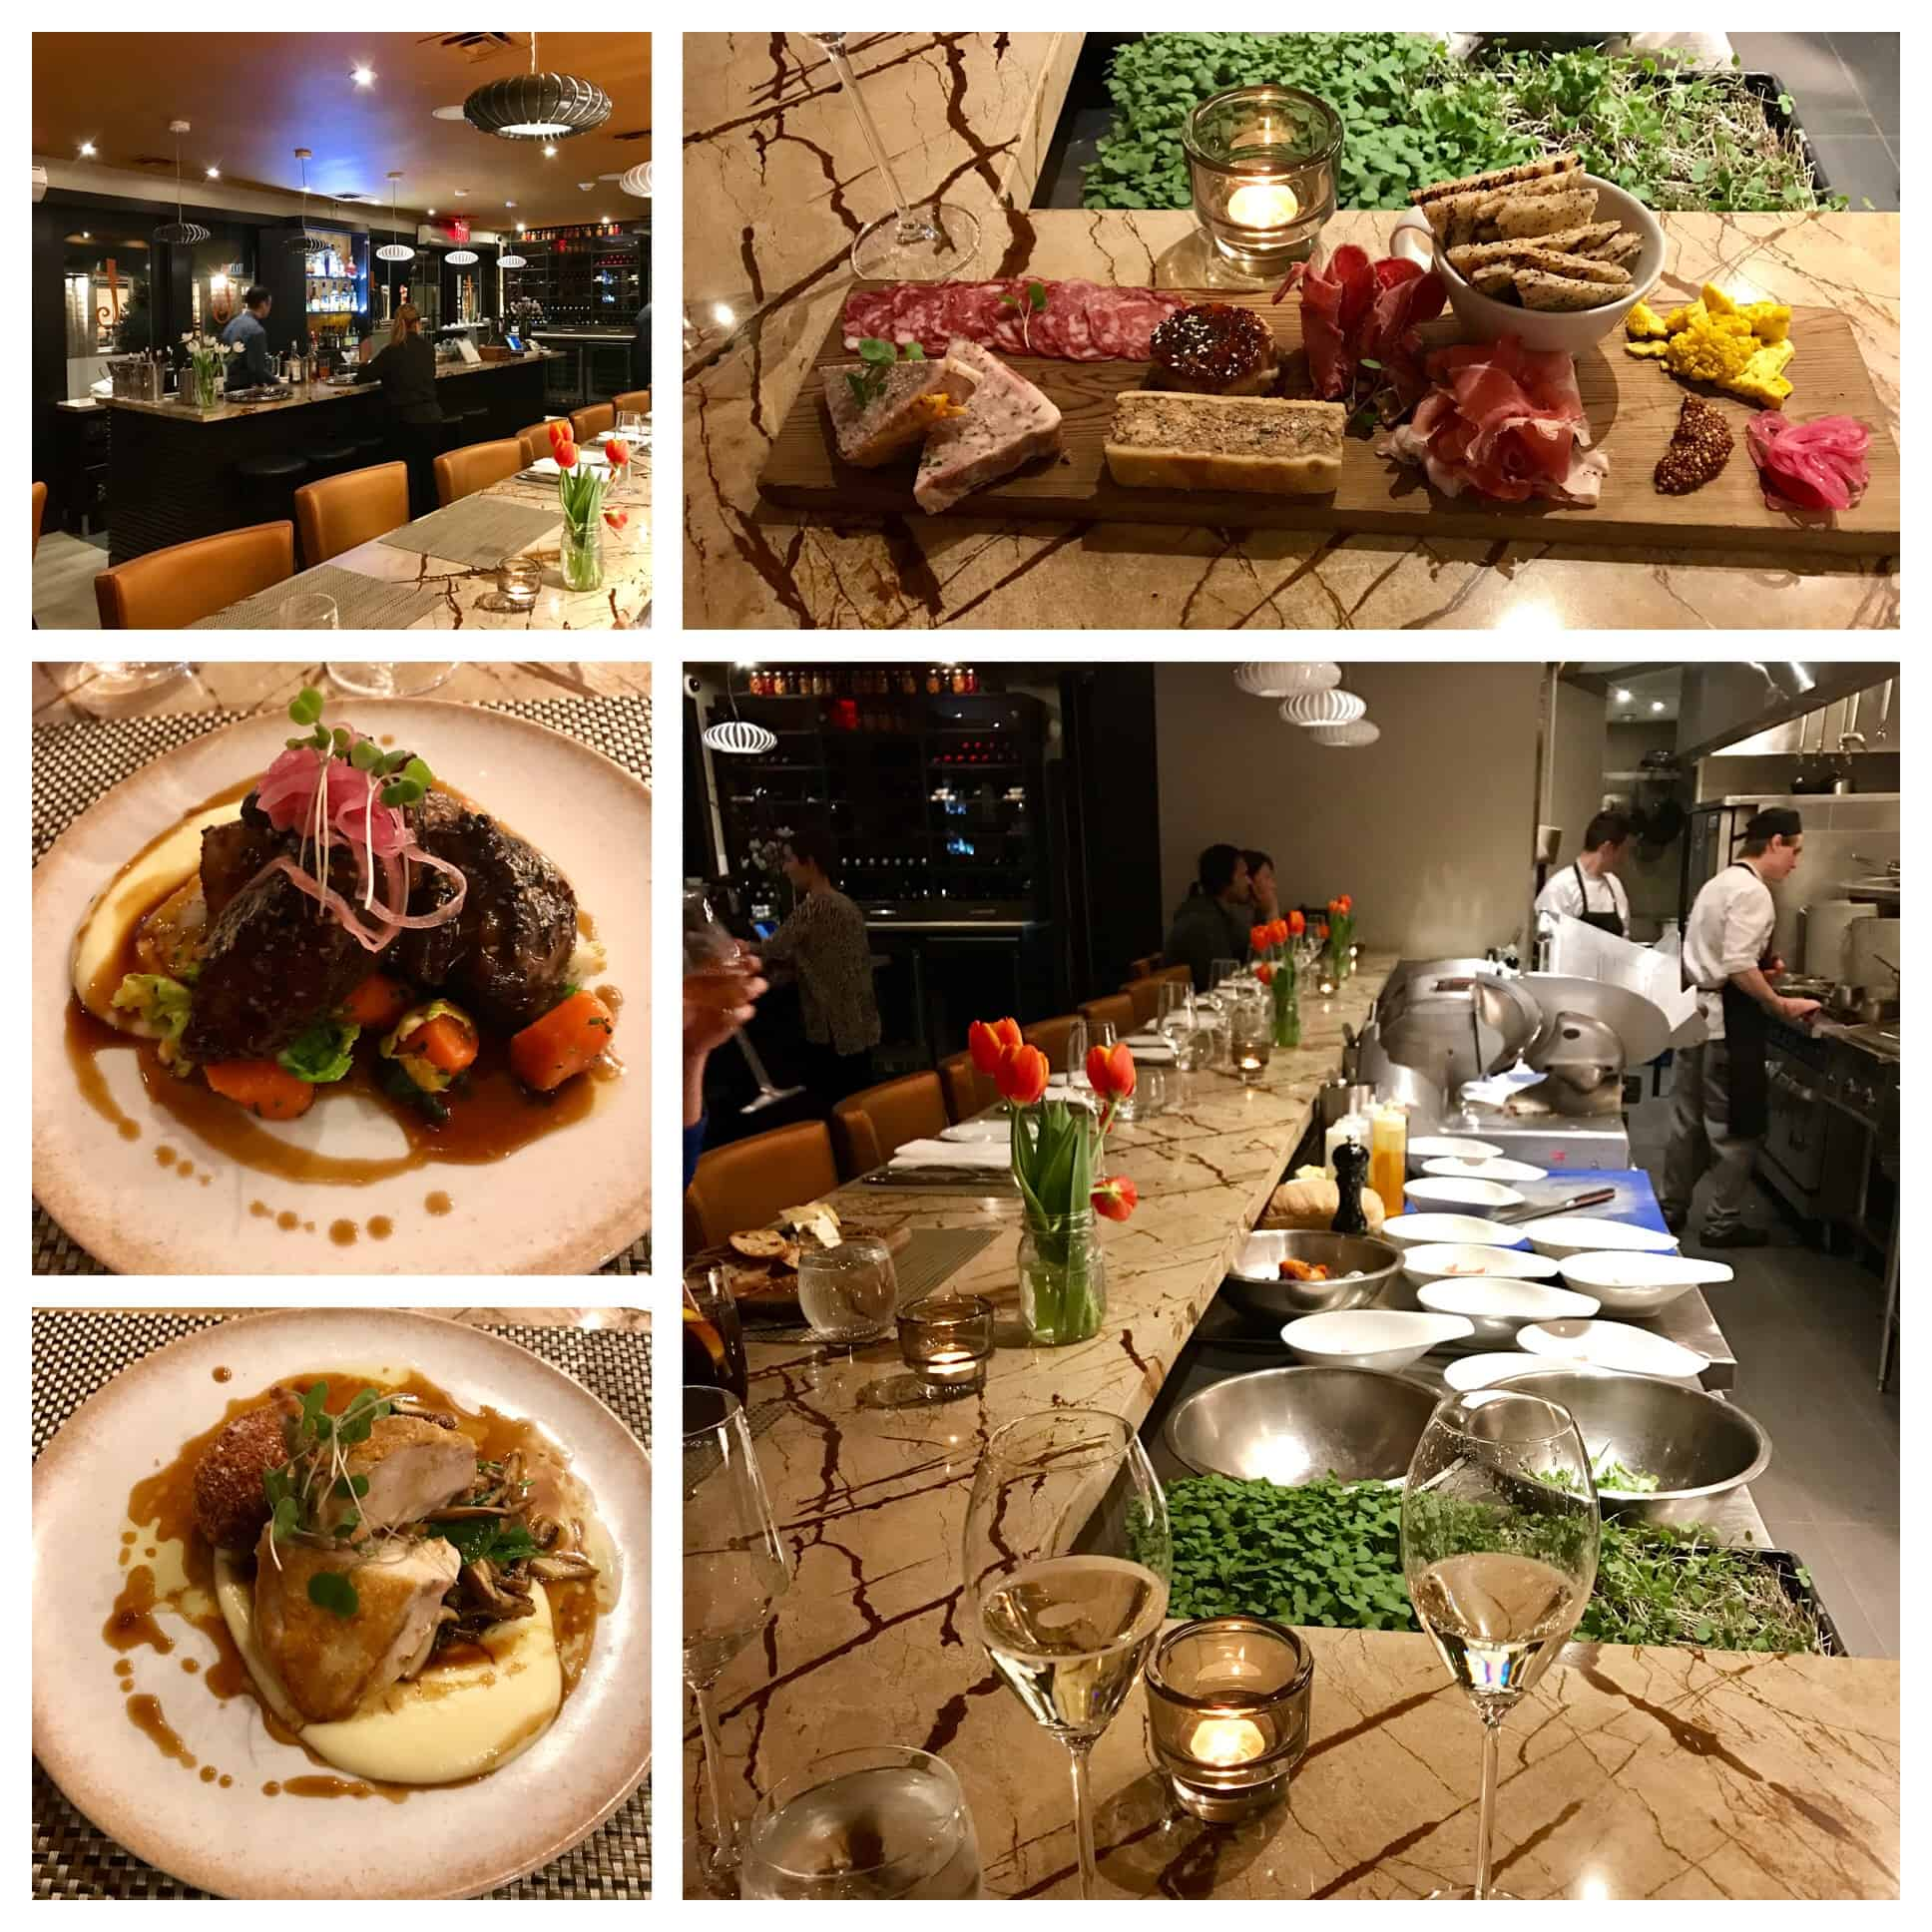 Collage of images from Treadwell Restaurant